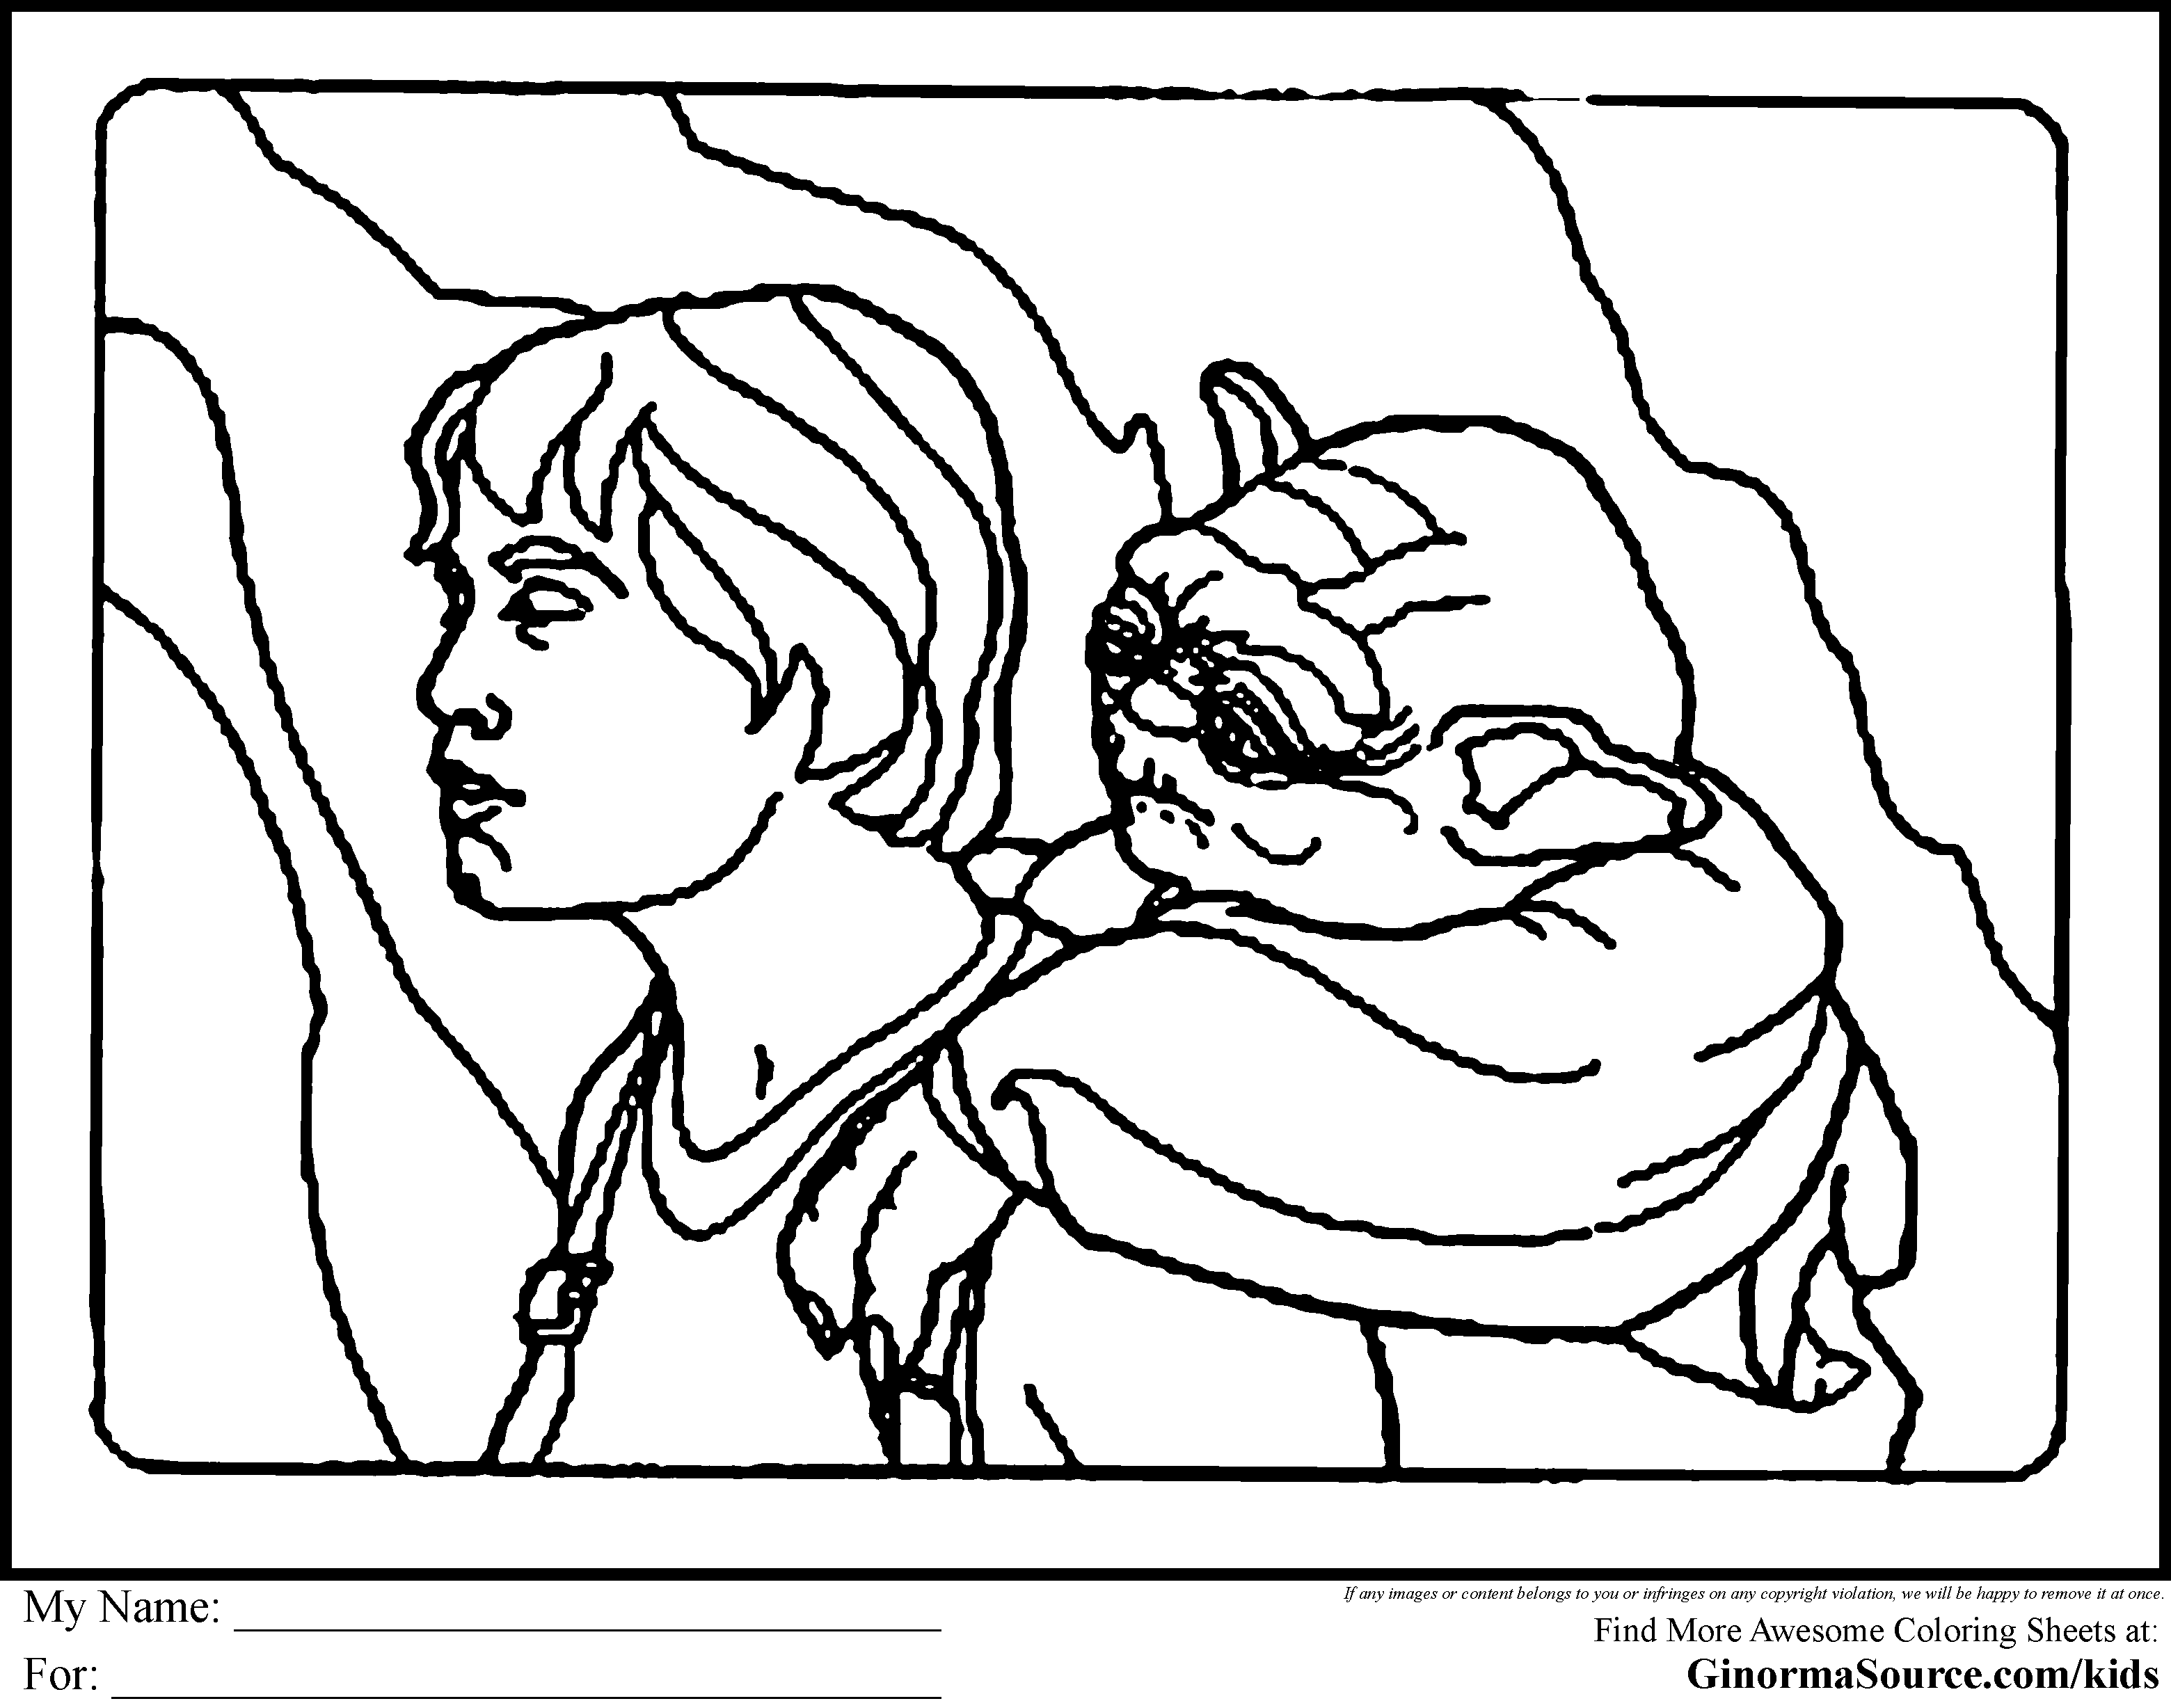 Disney Coloring Pages Star Wars : Star wars coloring pages luke home